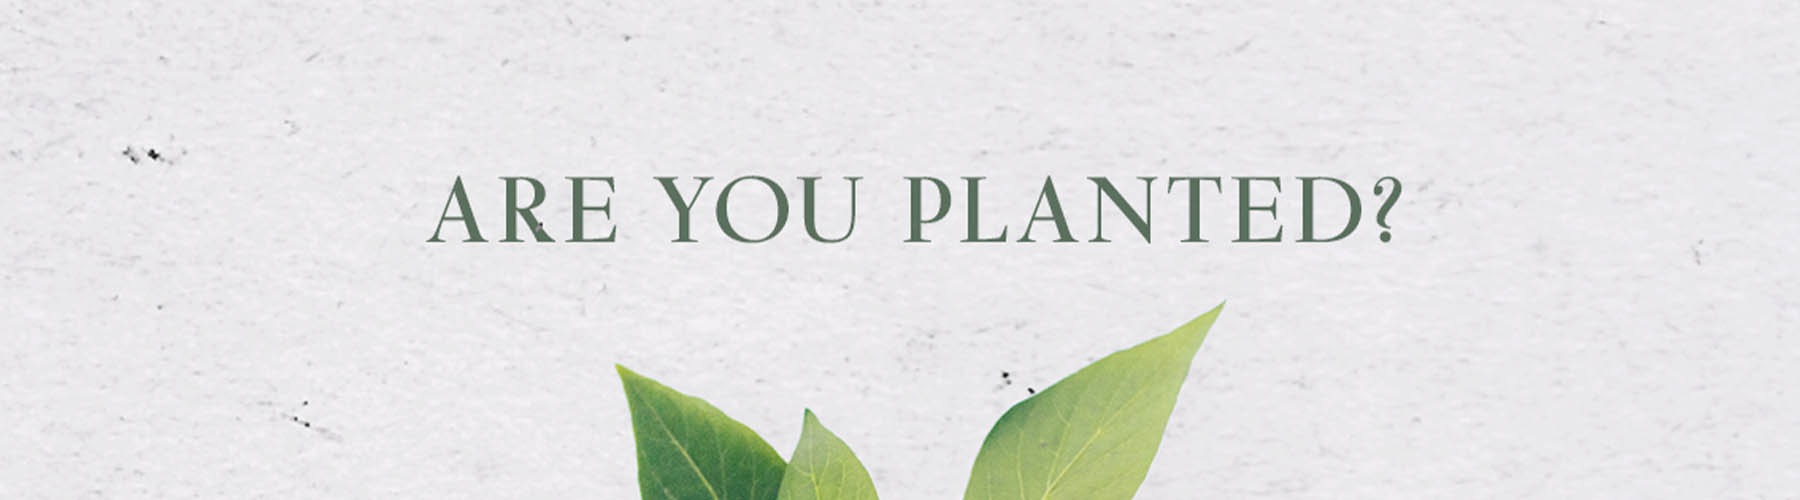 Are You Planted?